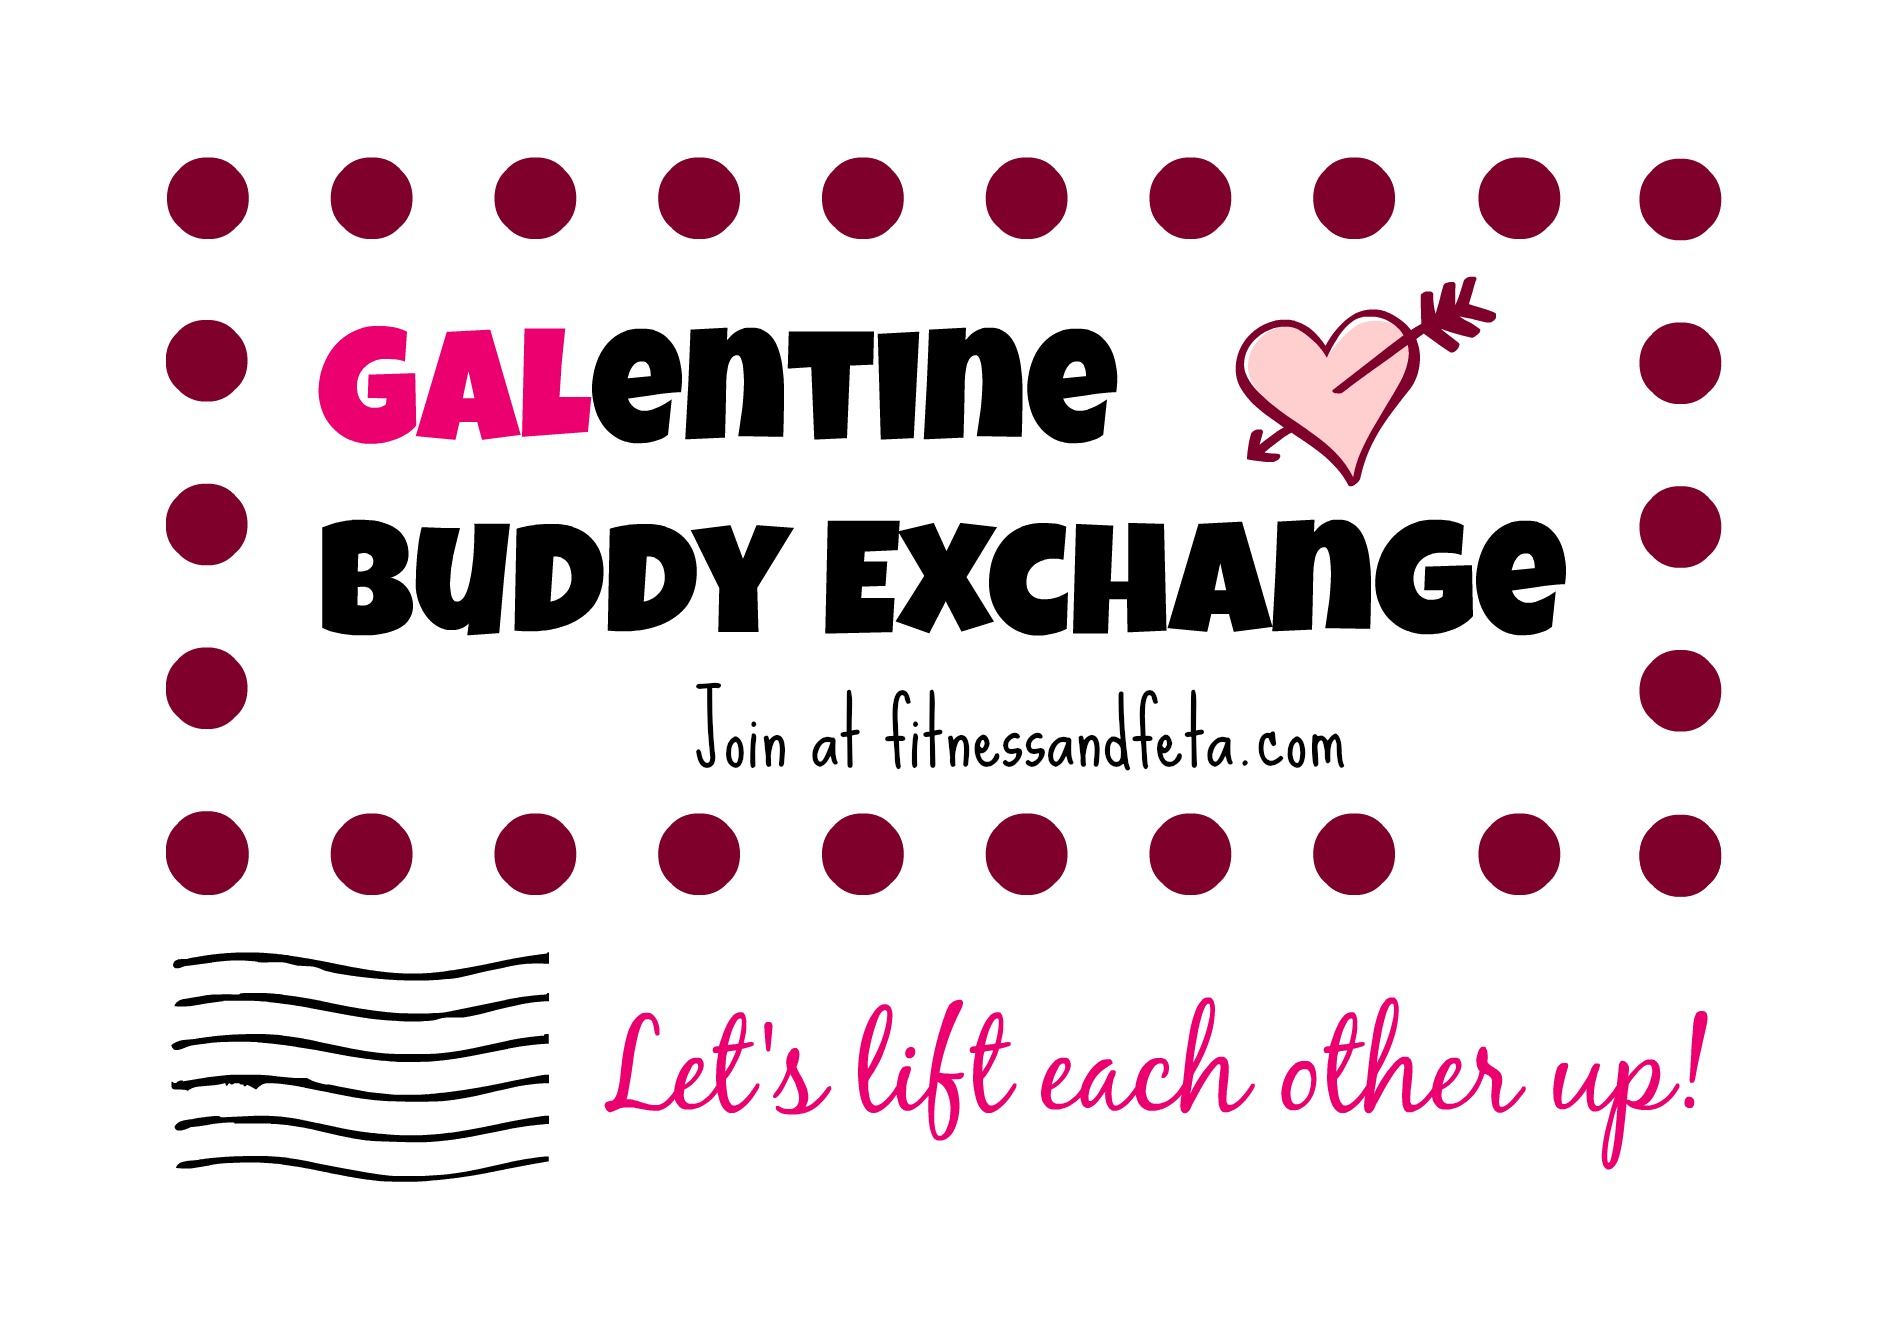 Galentine Buddy Exchange 2016